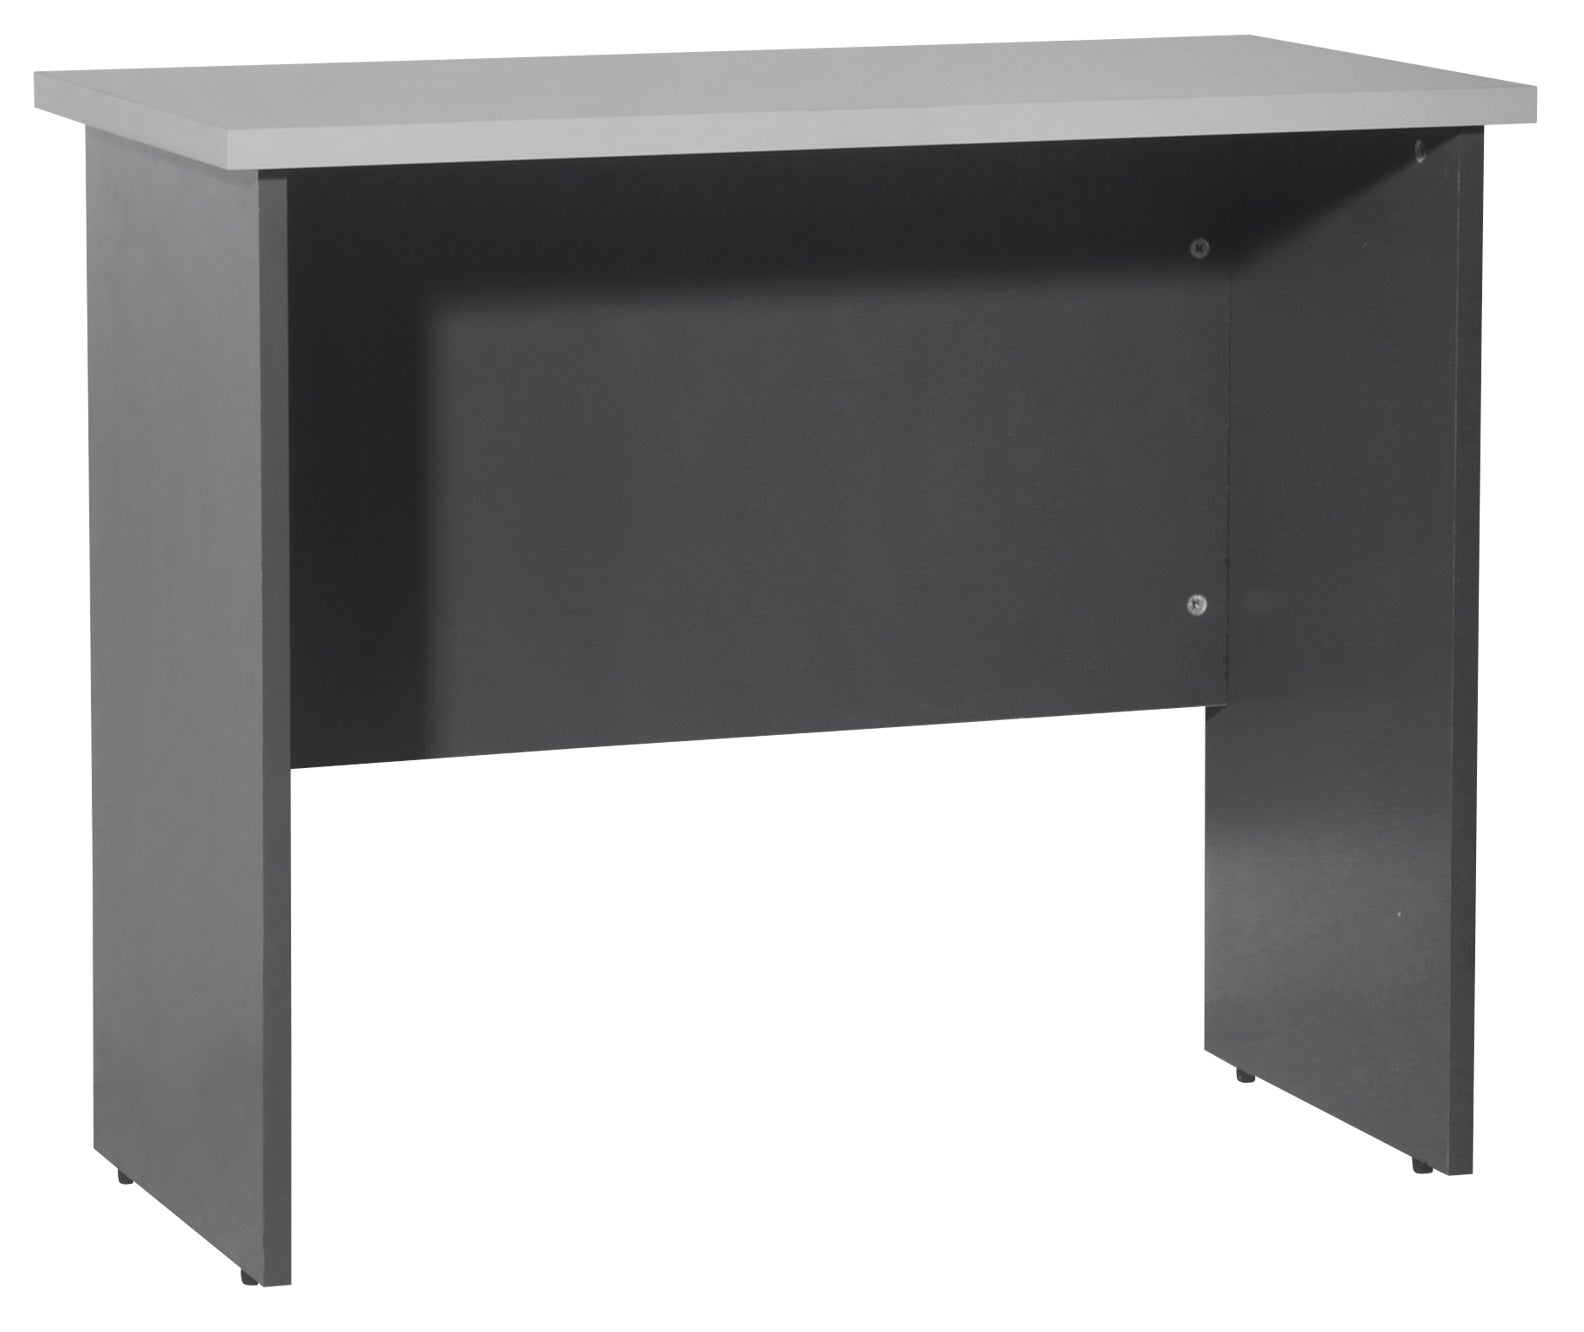 Side Table mm Fonzel Online Office Furniture Store